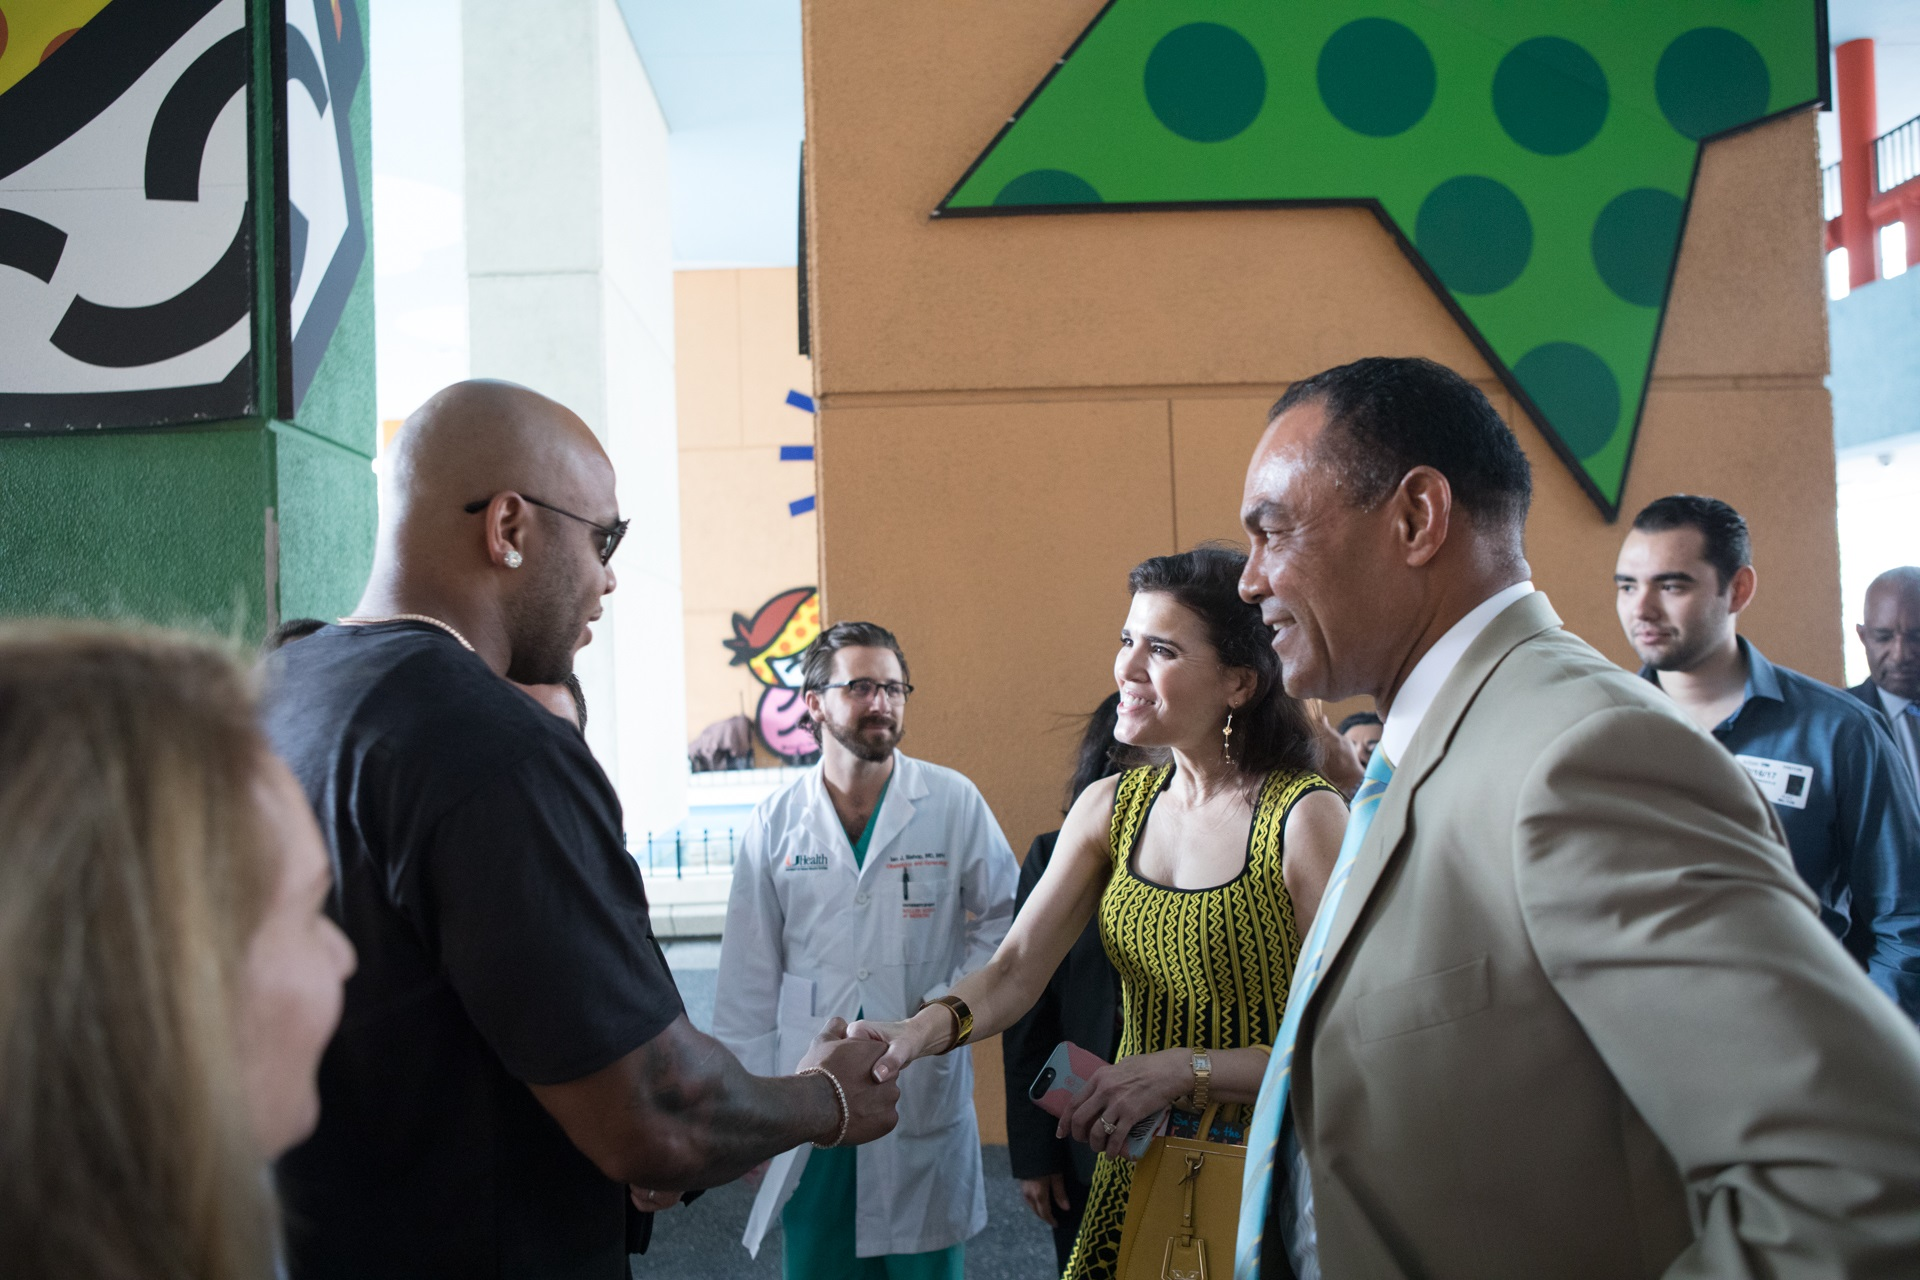 ... Jackson Health Foundation Board Members Greet Rapper Flo Rida